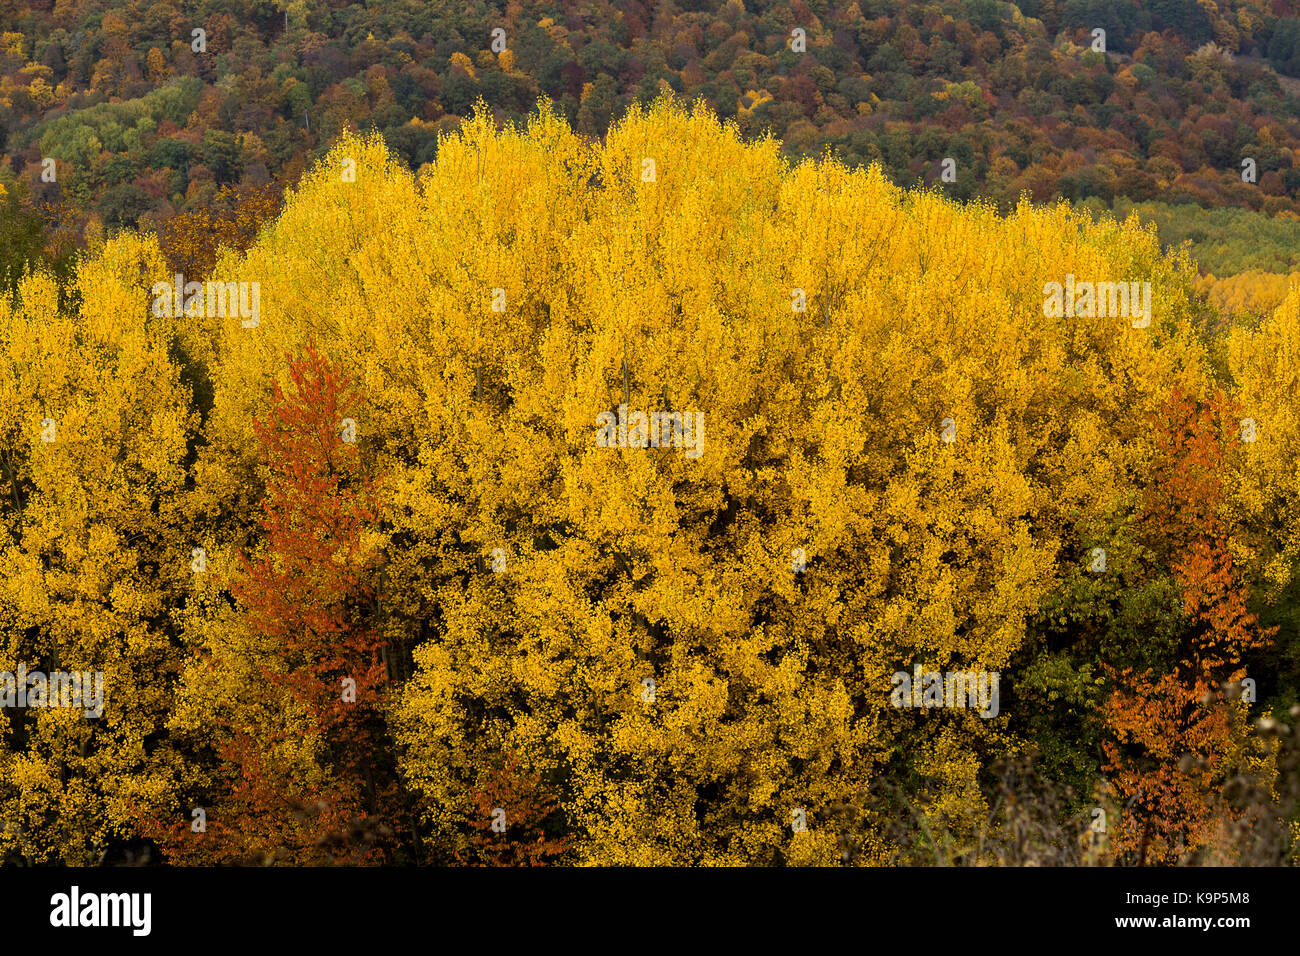 poetic autumn, environment, cycle of life concept. tree canopy is all covered small leaves of sunny yellow colour - Stock Image